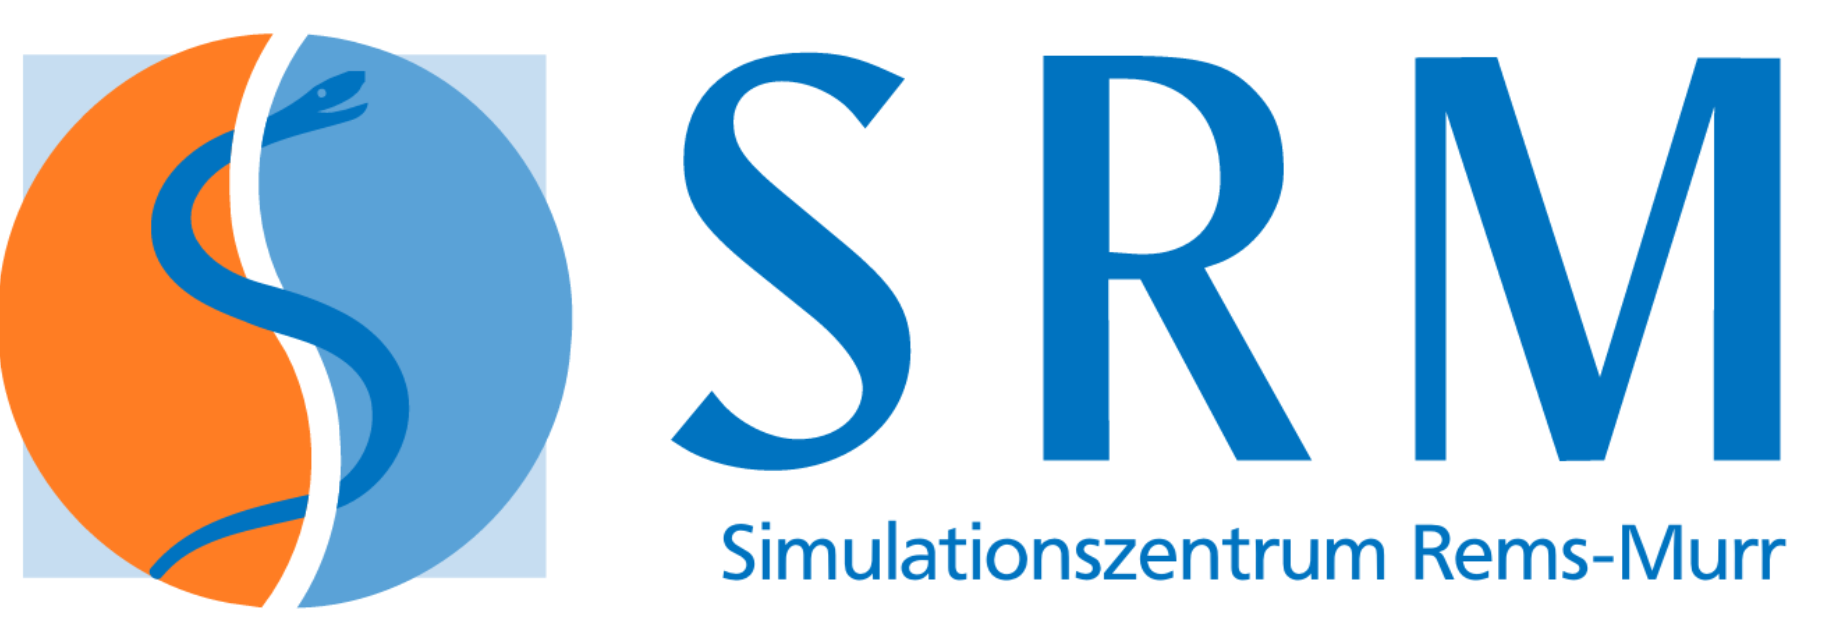 Simulationszentrum Rems-Murr